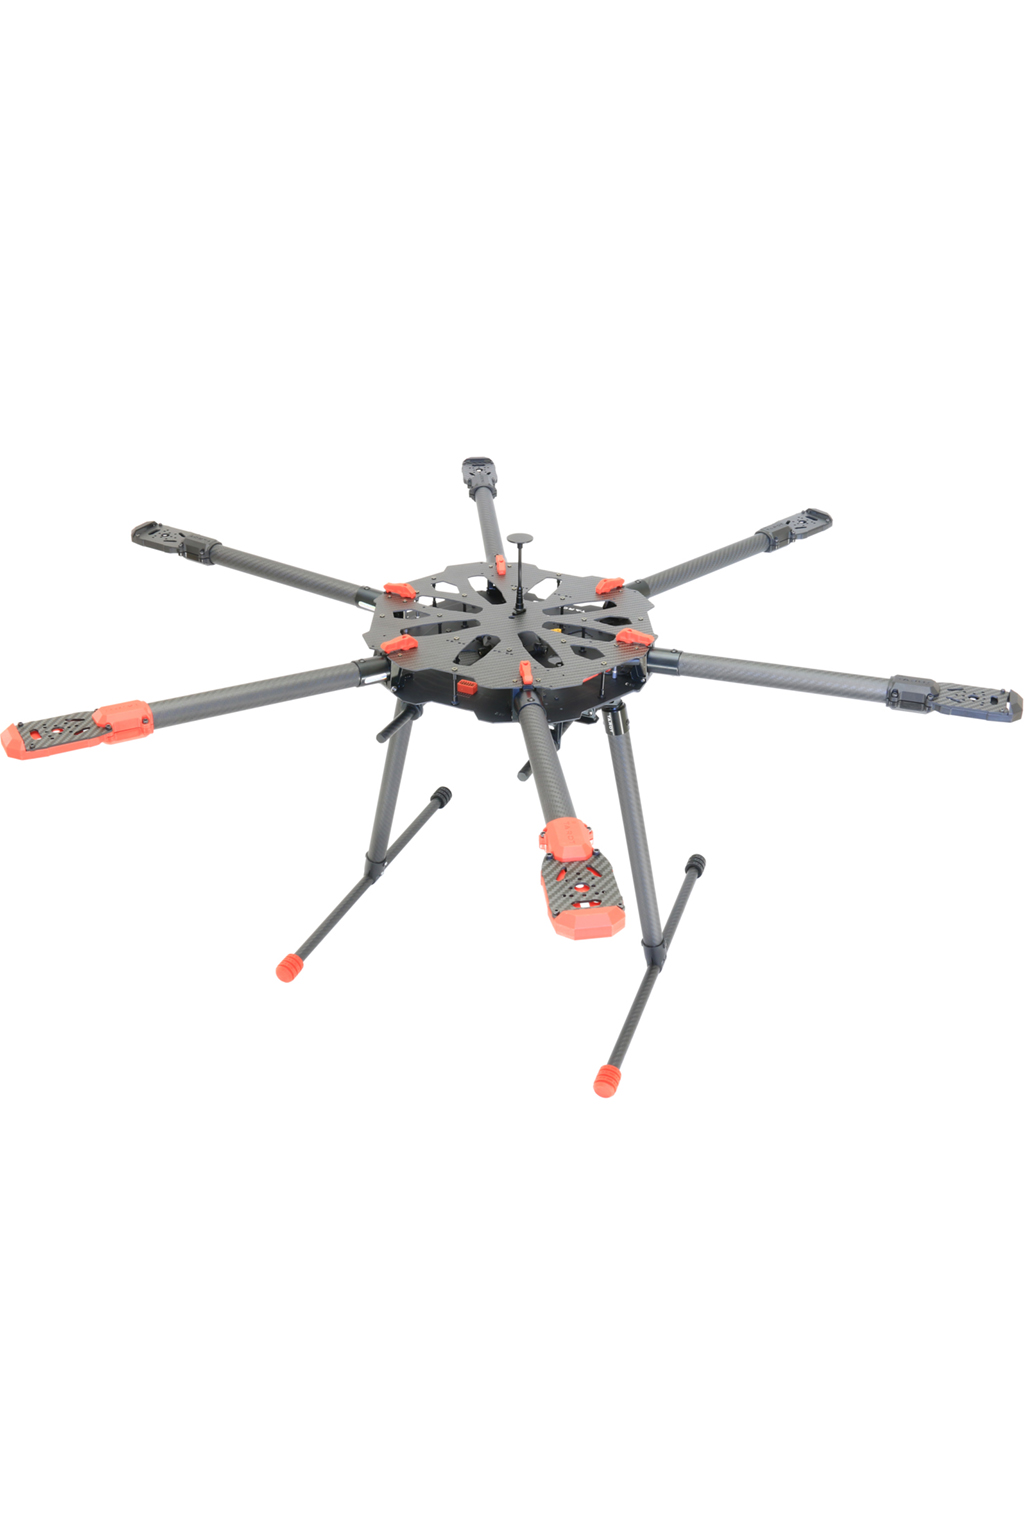 Tarot X6 690mm Carbon Fibre Foldable Hexacopter Frame | Flying Tech